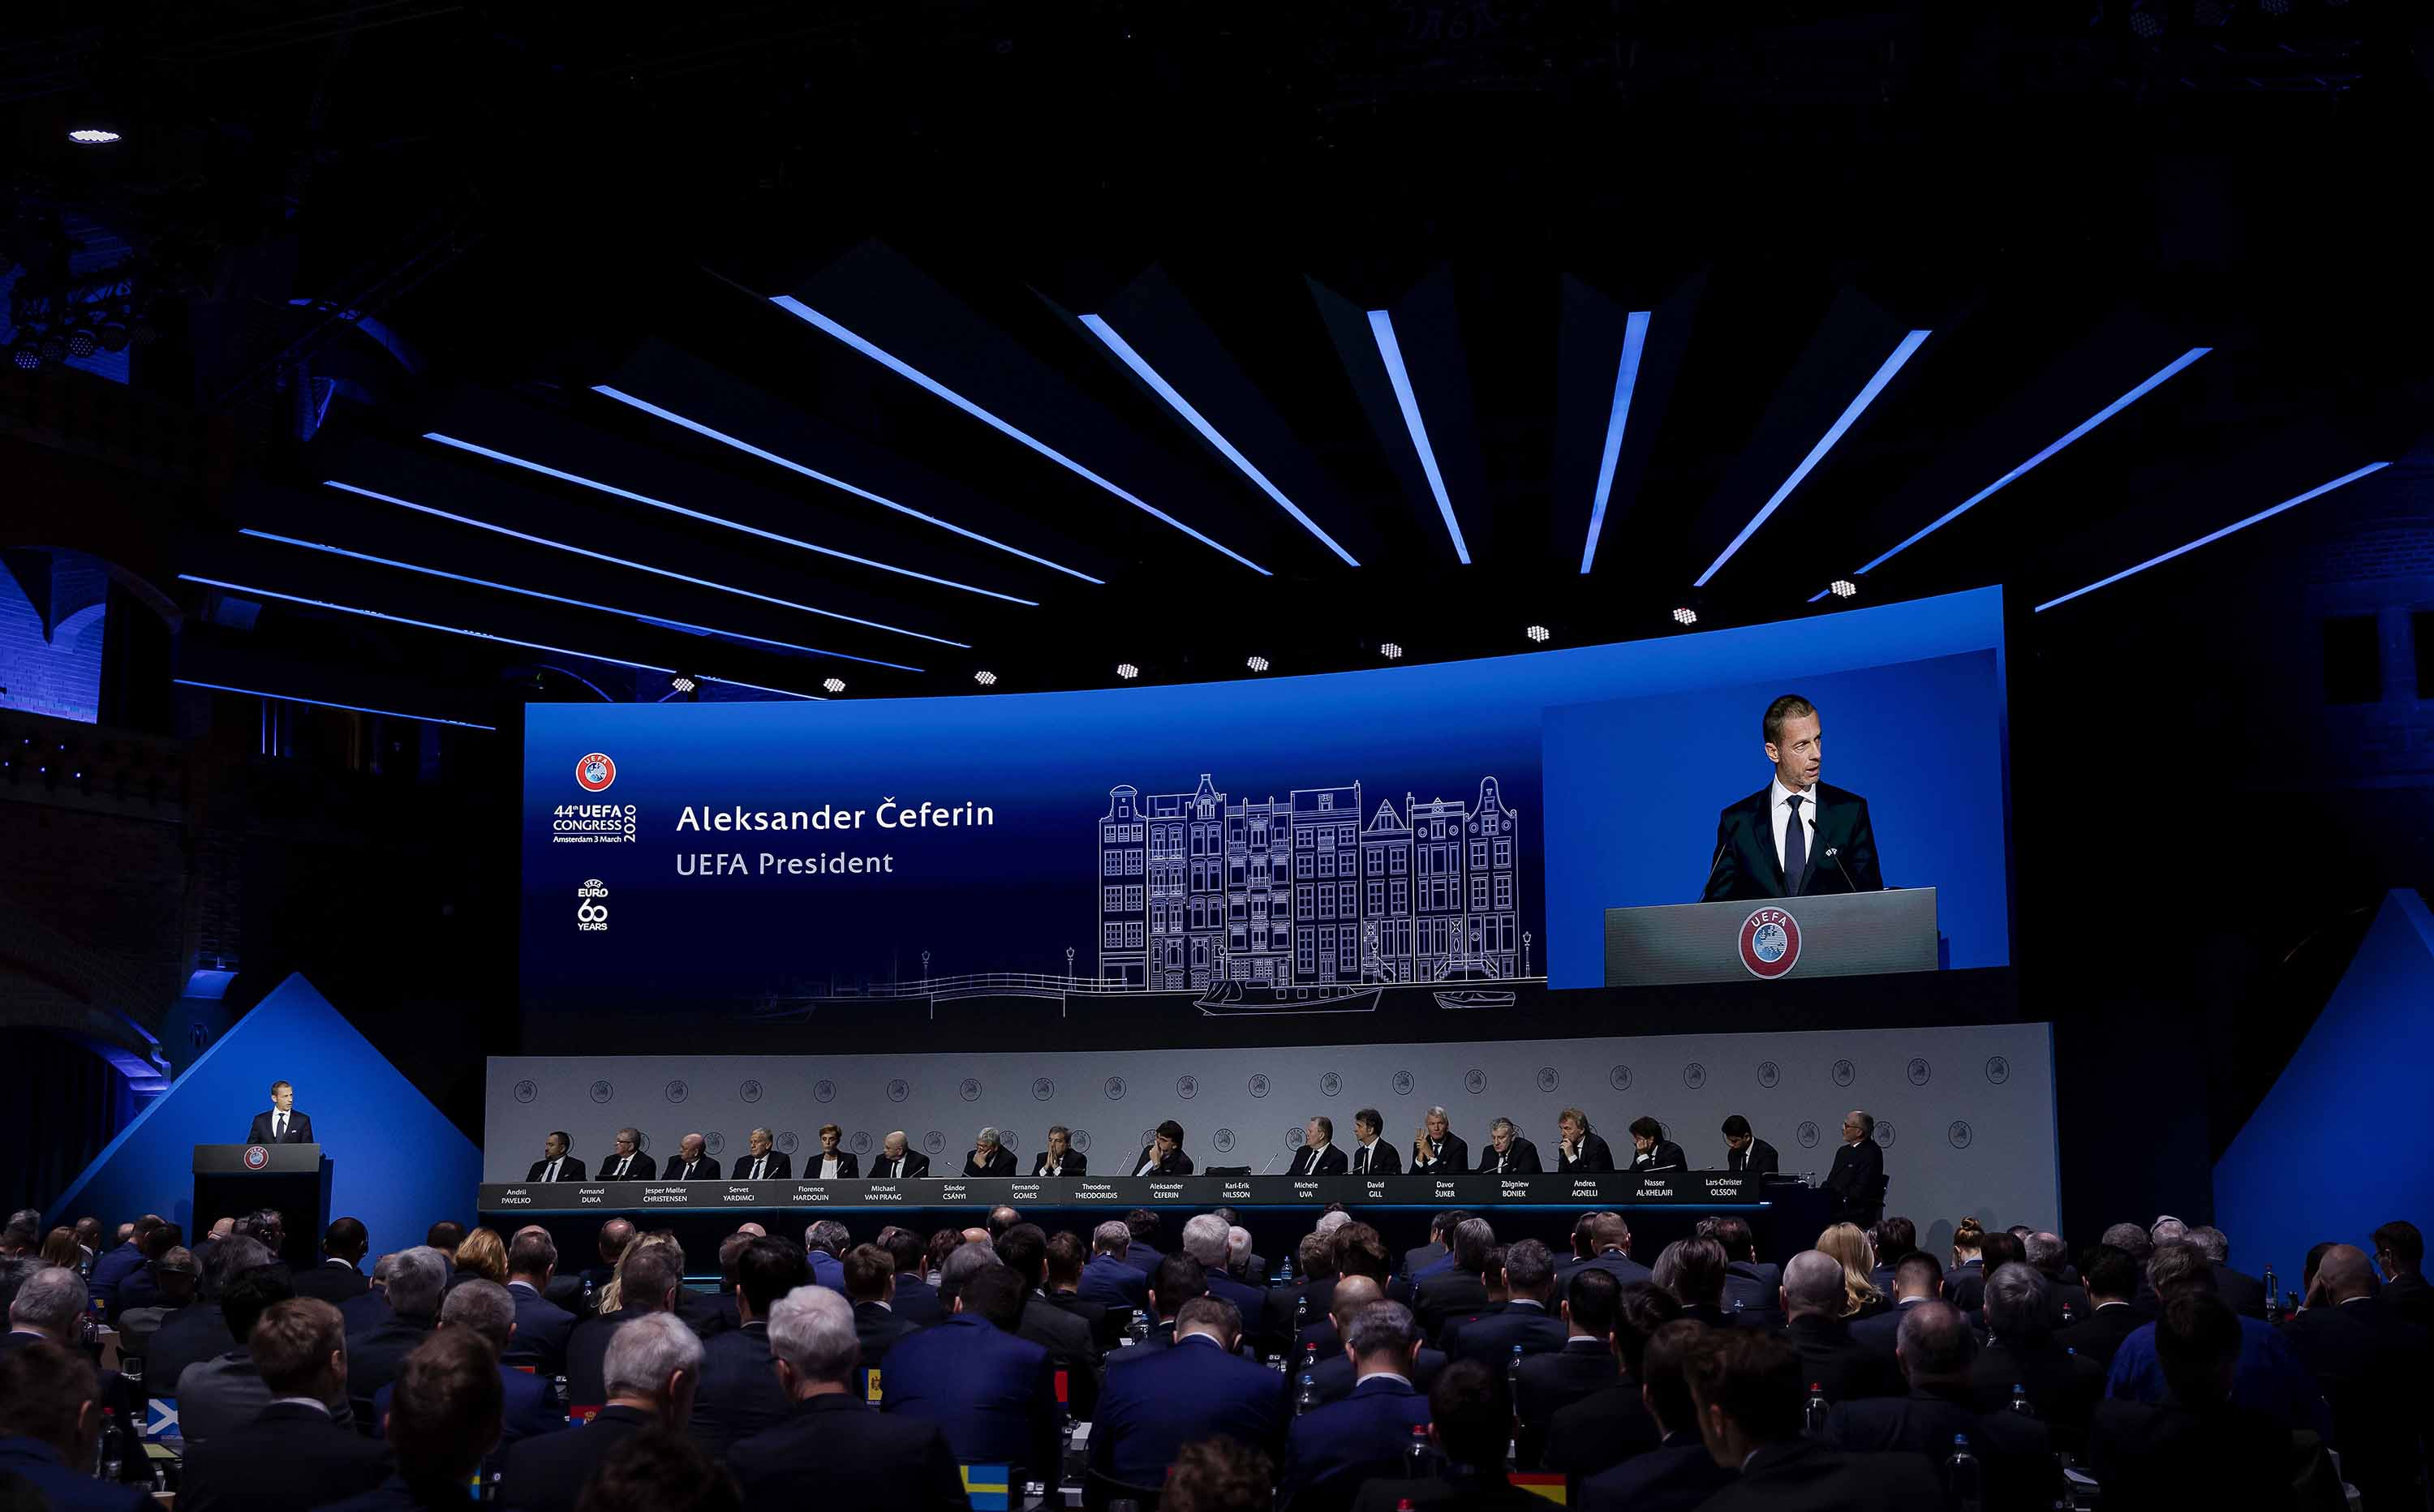 UEFA president Aleksander Ceferin speaks during the 44th Ordinary UEFA Congress in Amsterdam, the Netherlands, on Tuesday.